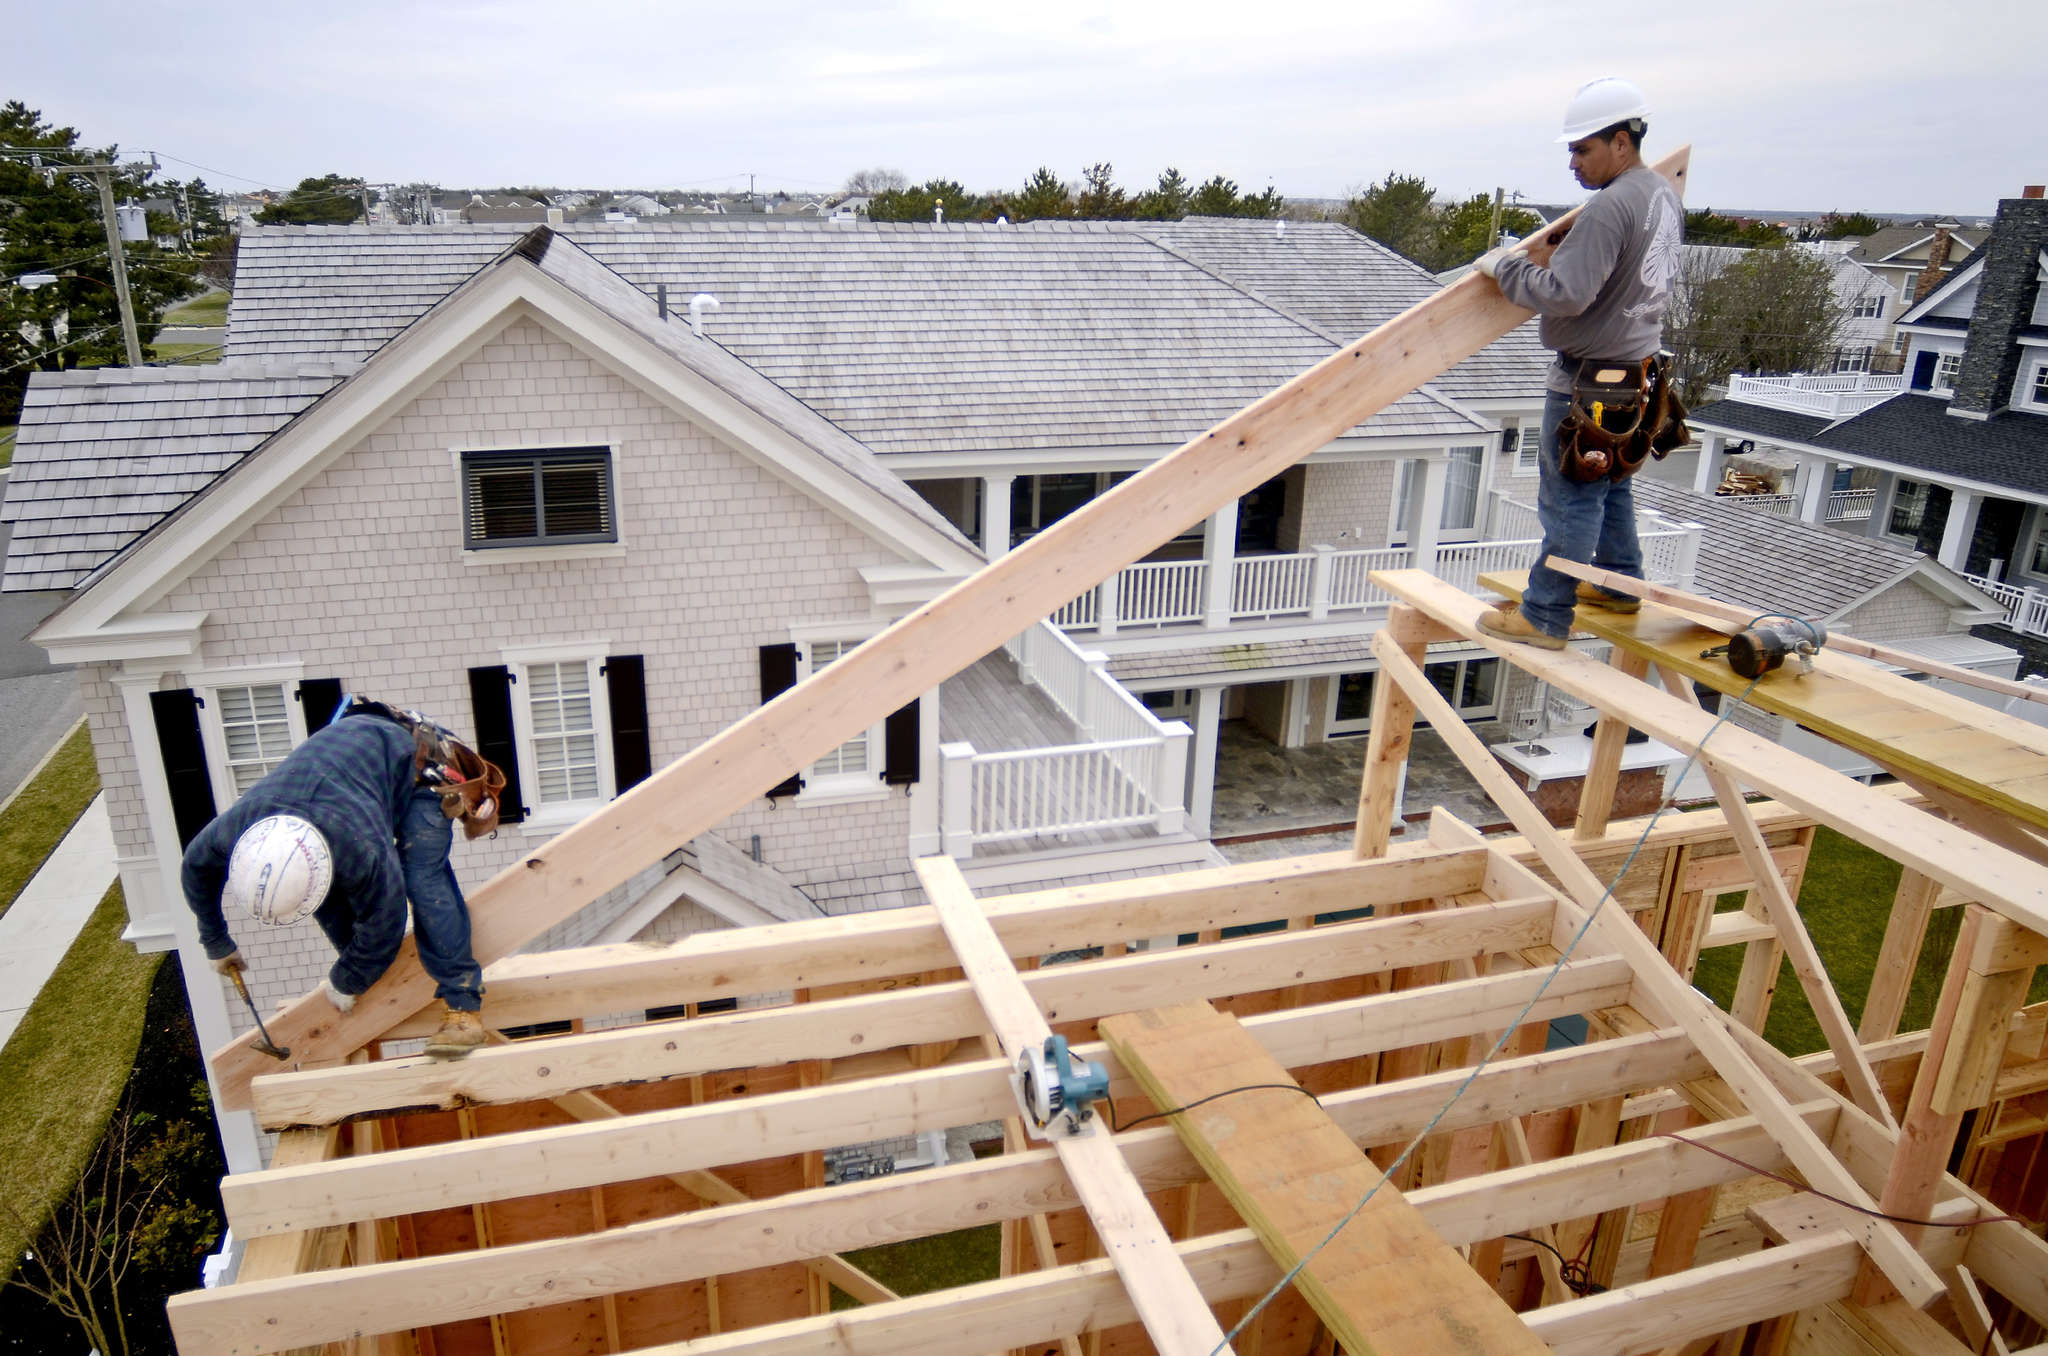 Workers help build a home in Stone Harbor. Construction workers are in short supply and competition is mounting among builders in 33 major markets as the number of new-home communities increases.